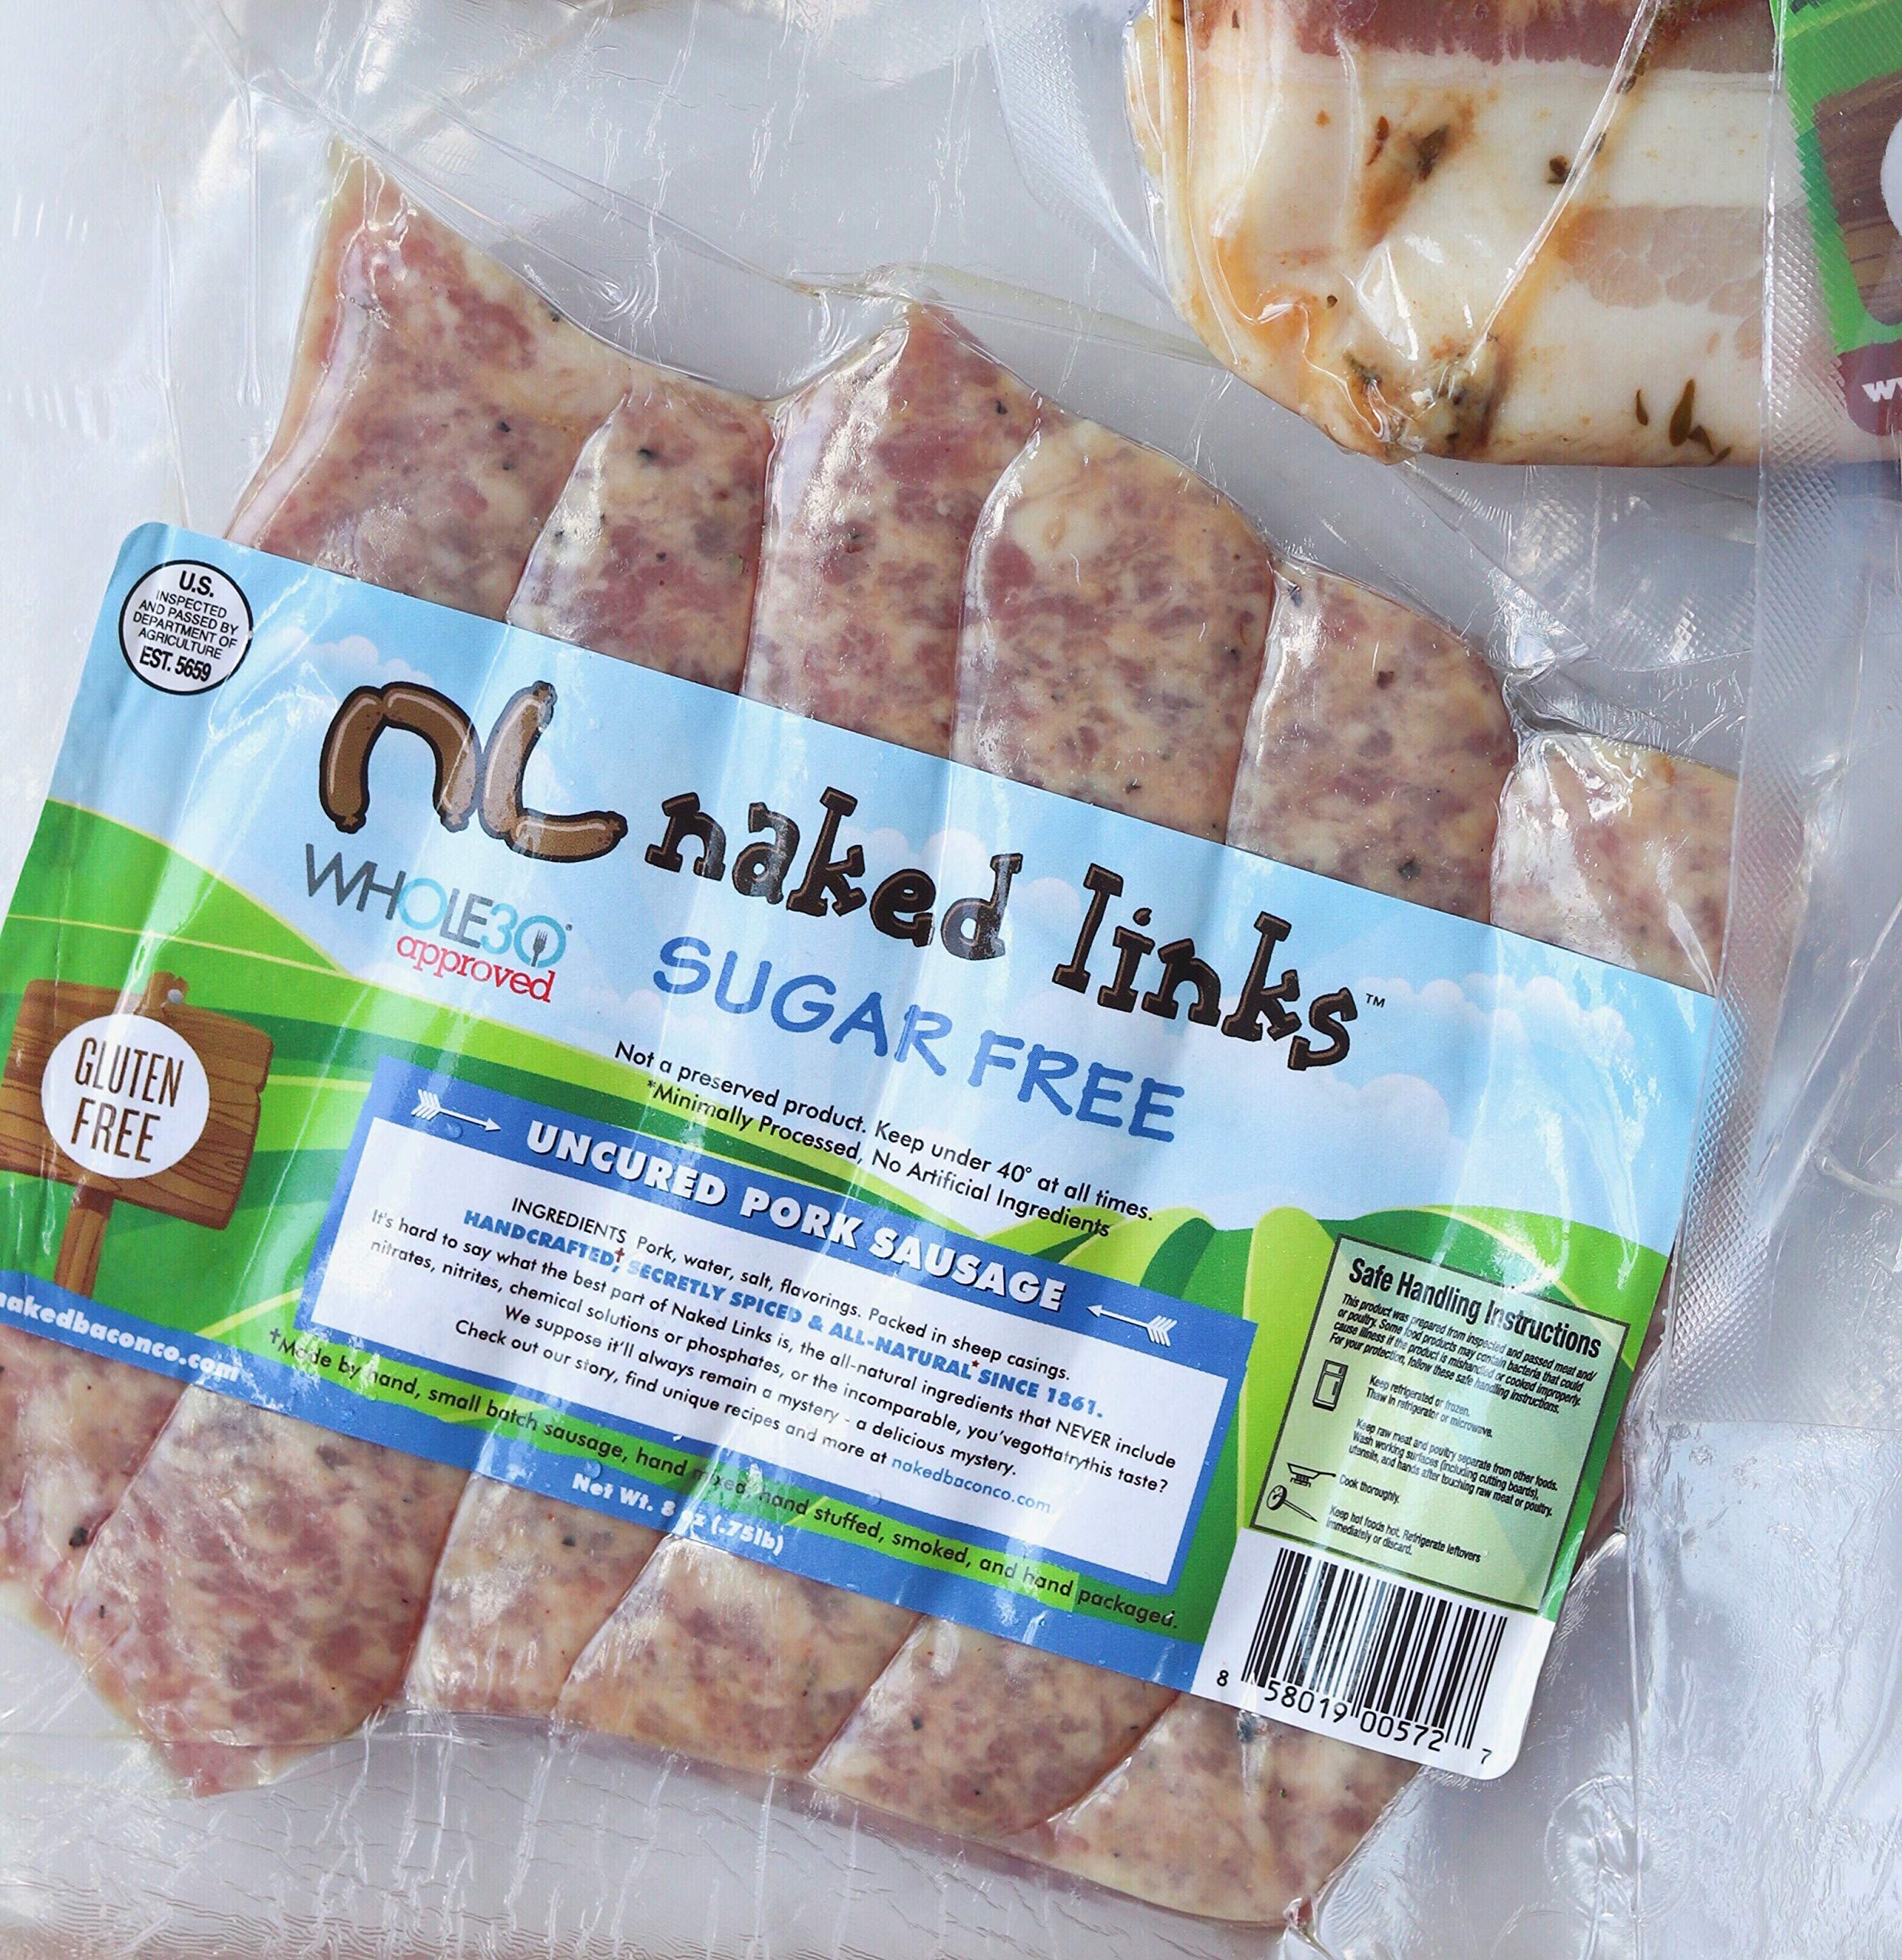 Sugar Free Breakfast Sausage Links - Naked Links - Whole30 Approved Multipack (5 packages)